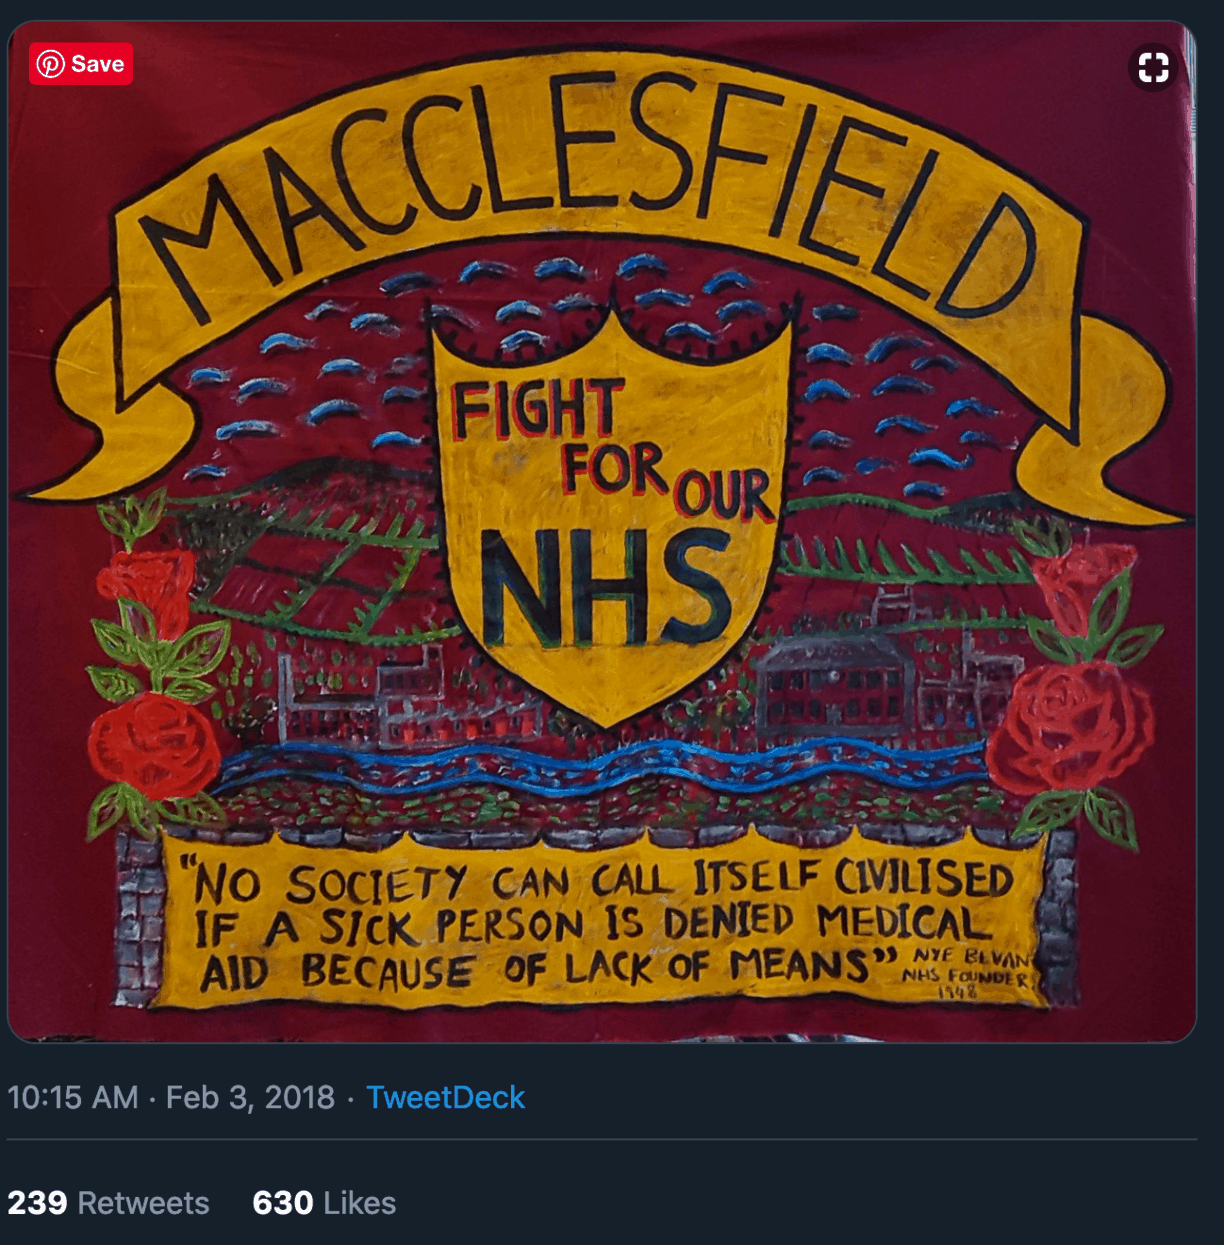 Macclesfield NHS Fight Banner